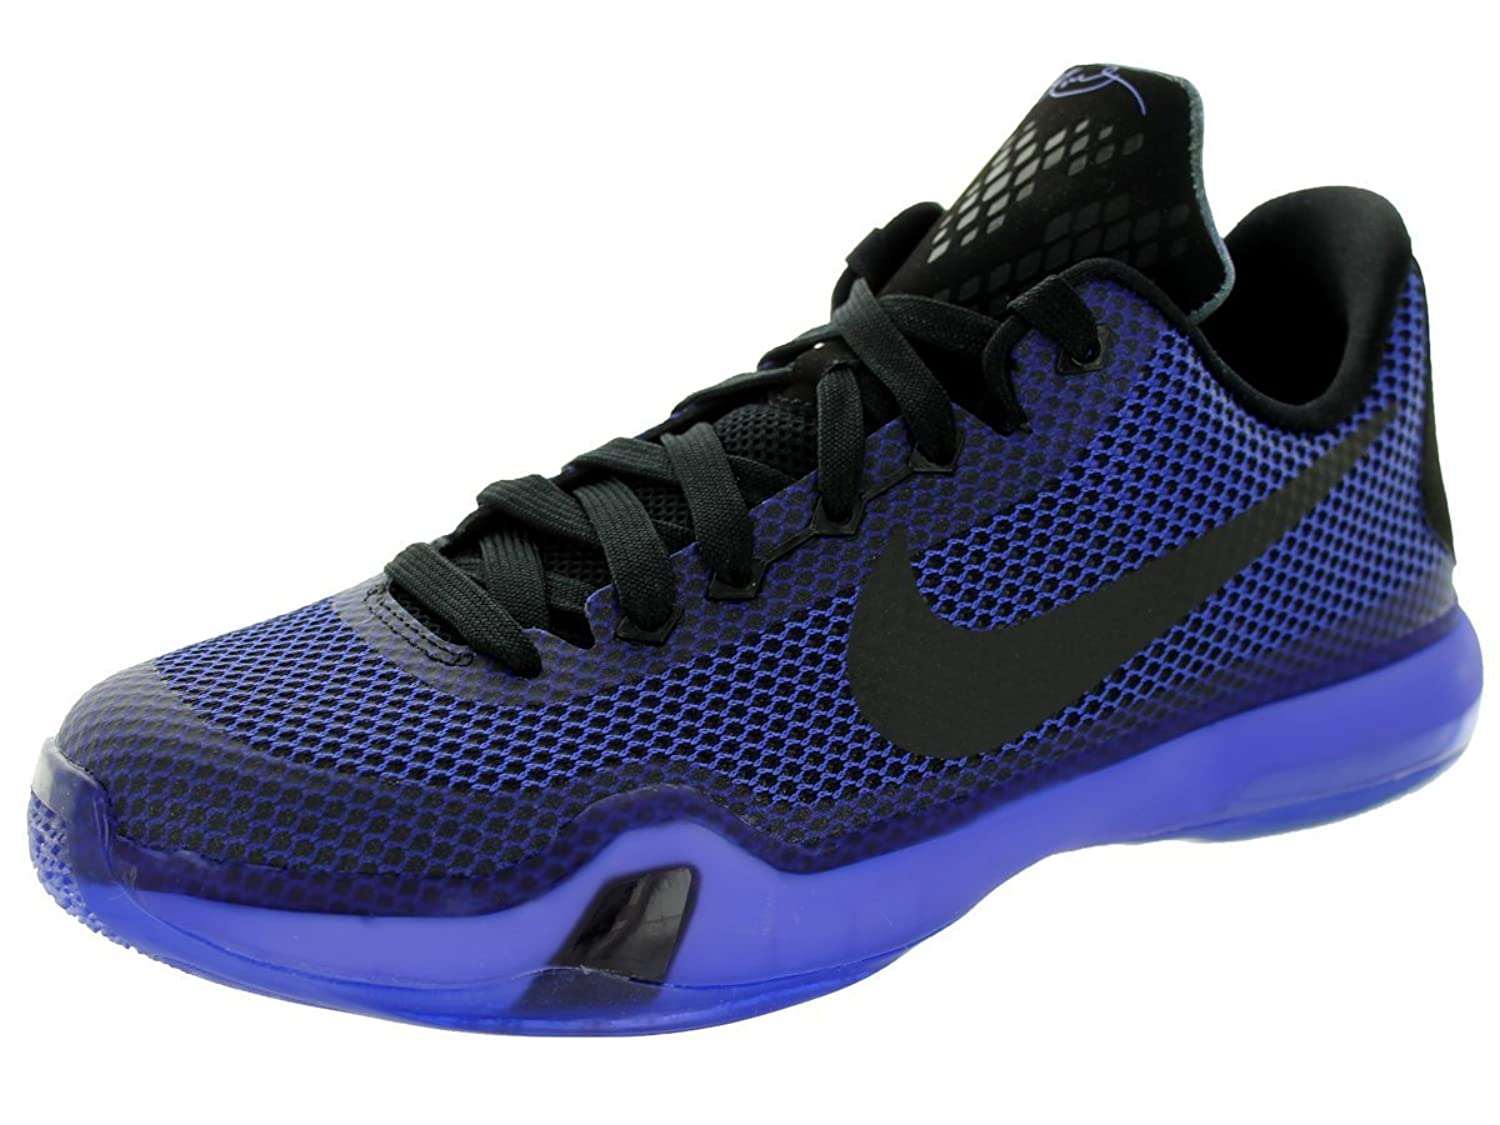 Best Youth Basketball Shoes For Traction